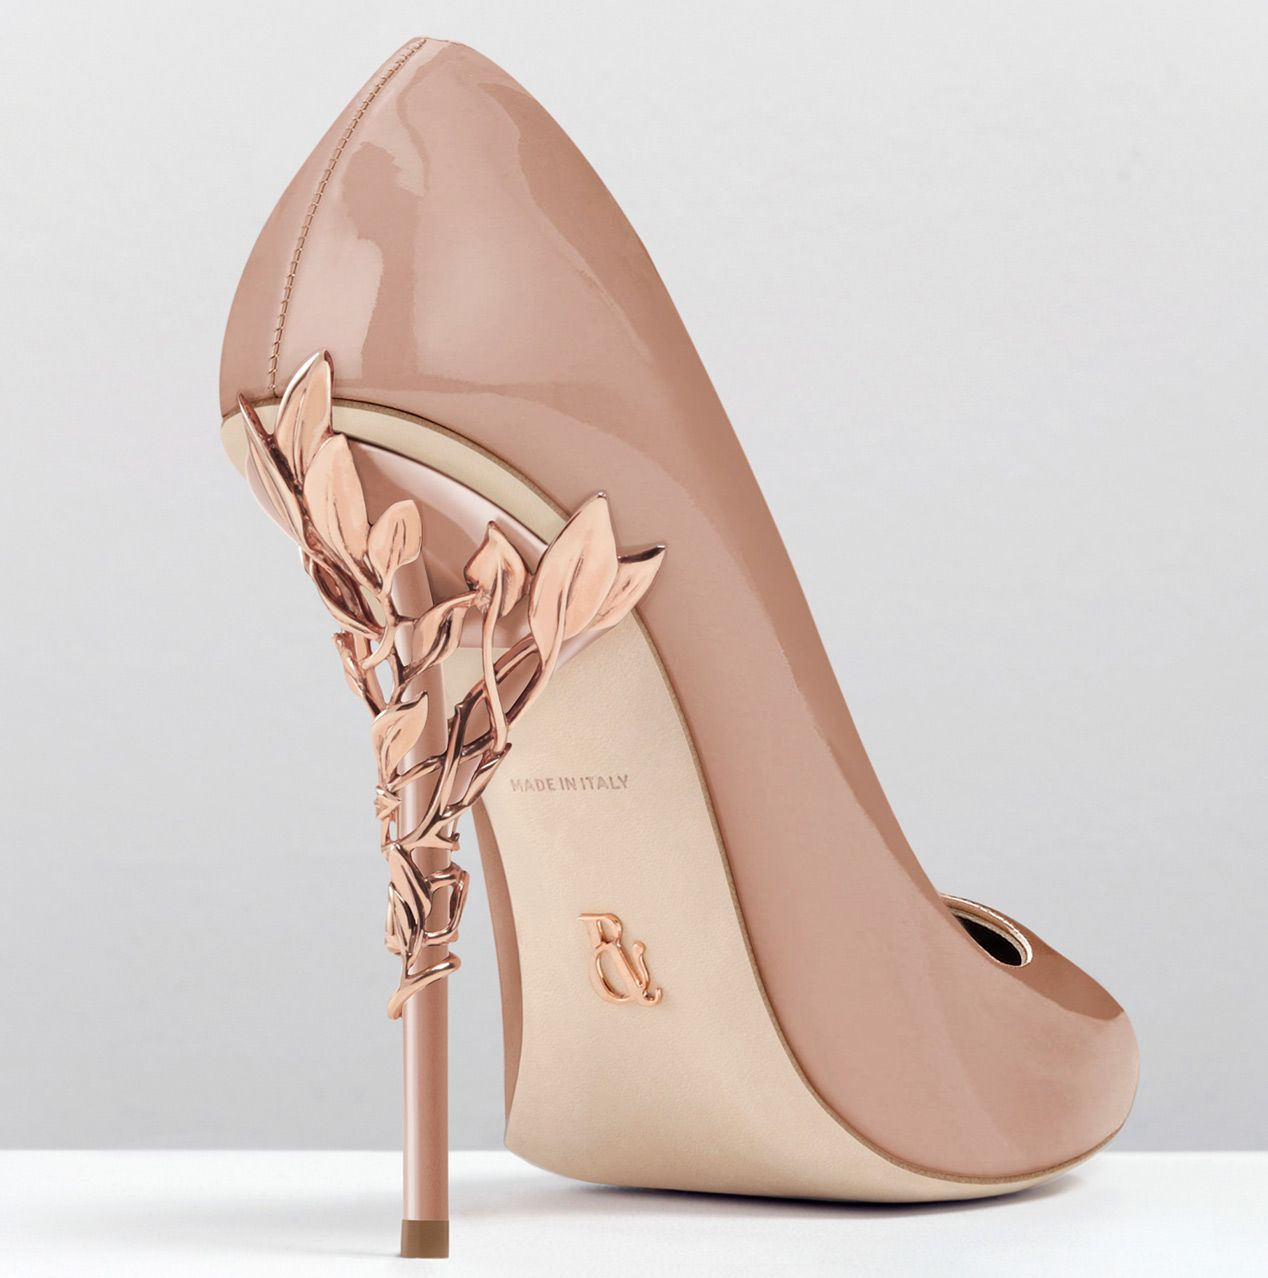 As if from an enchanted fairy-tale, entangled in the dense foliage of the forest and claimed by a wandering damsel, the Eden Heel Pump is celestial, refined and romantic.